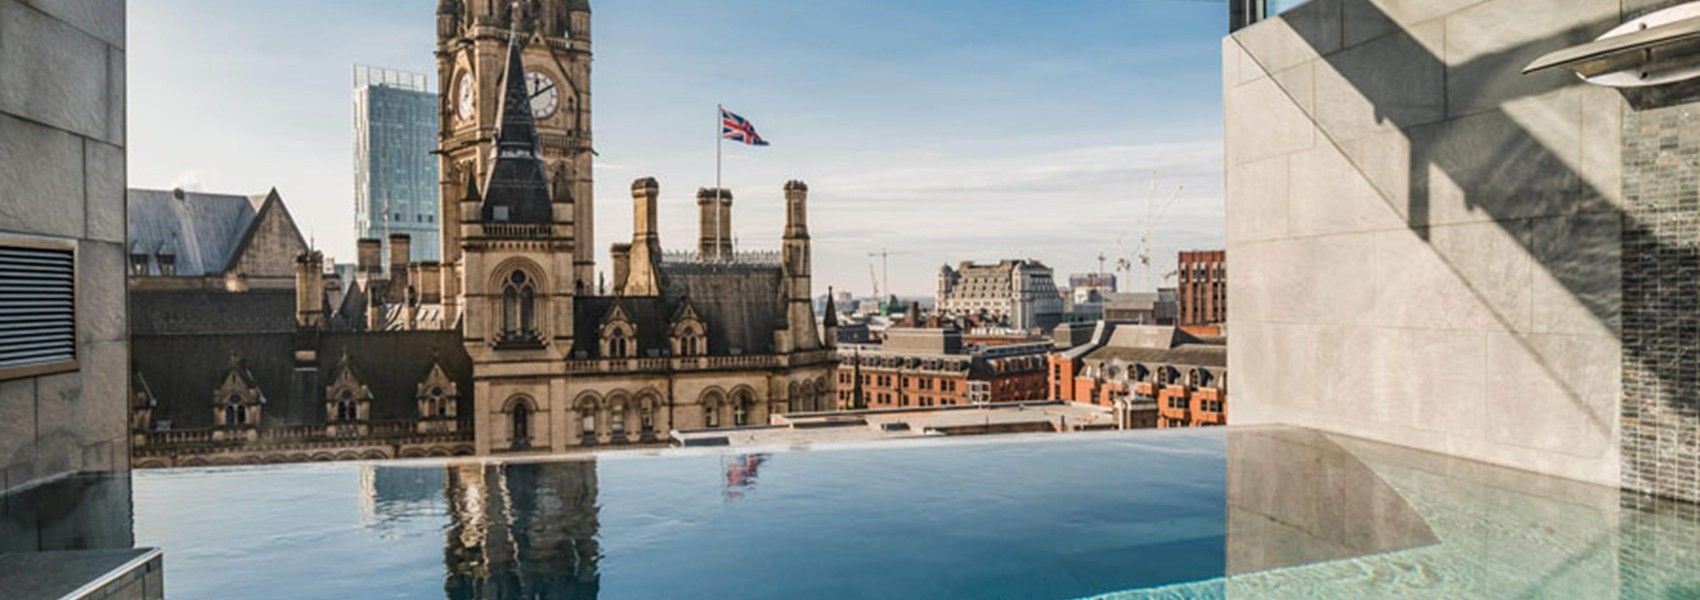 Top 5 outdoor spaces in Manchester